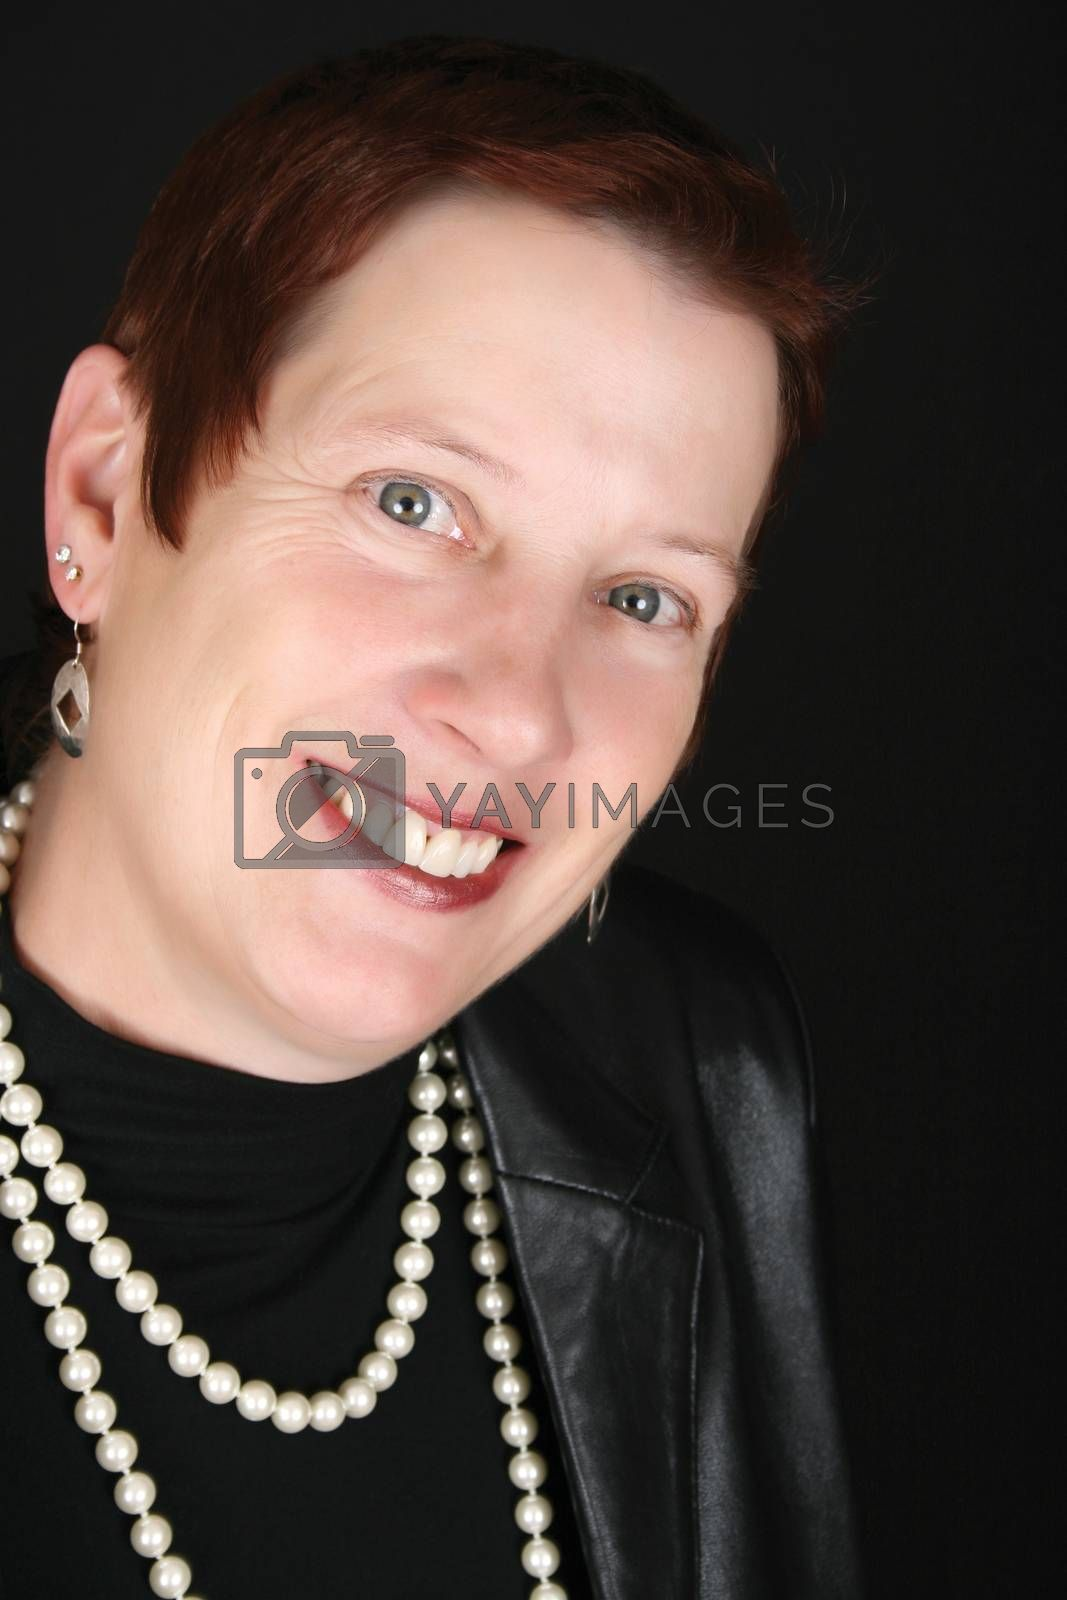 Elegant female wearing a black leather jacket and pearls